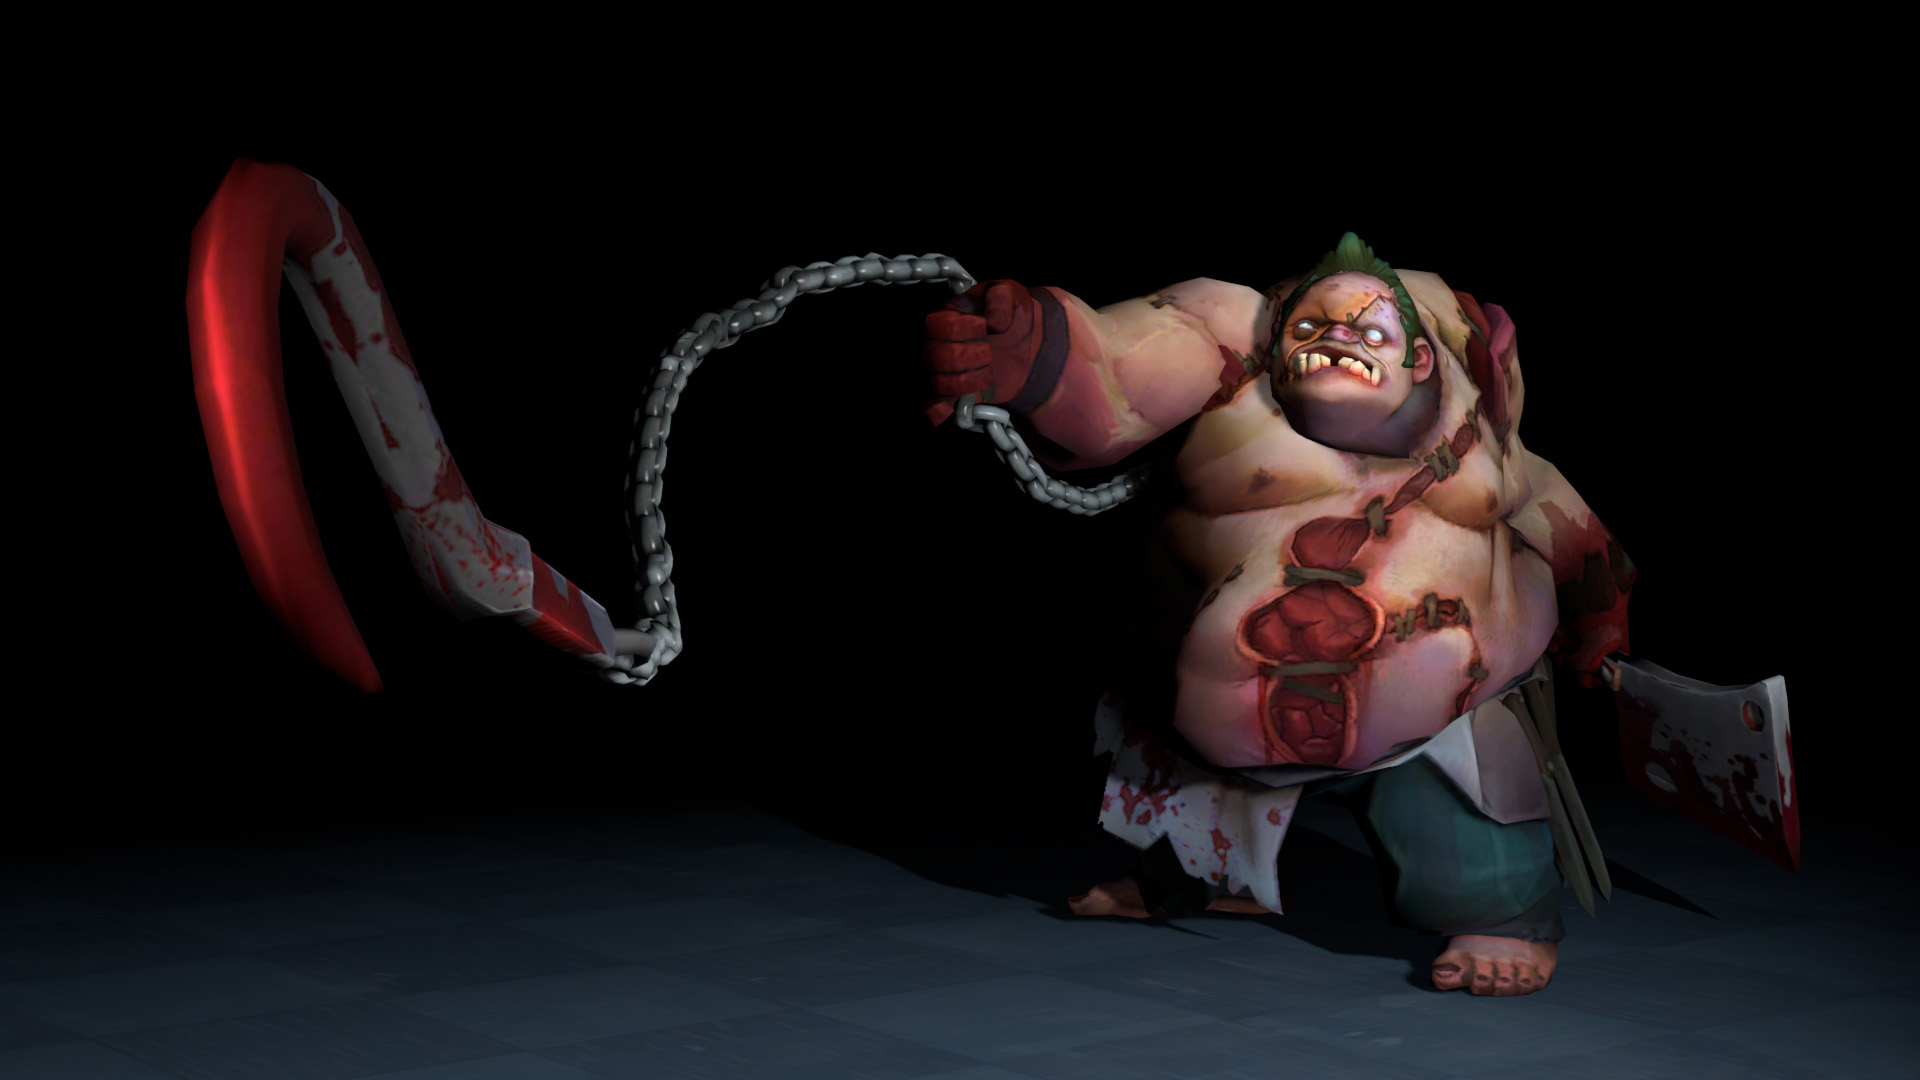 Pudge Dota 2 wallpapers